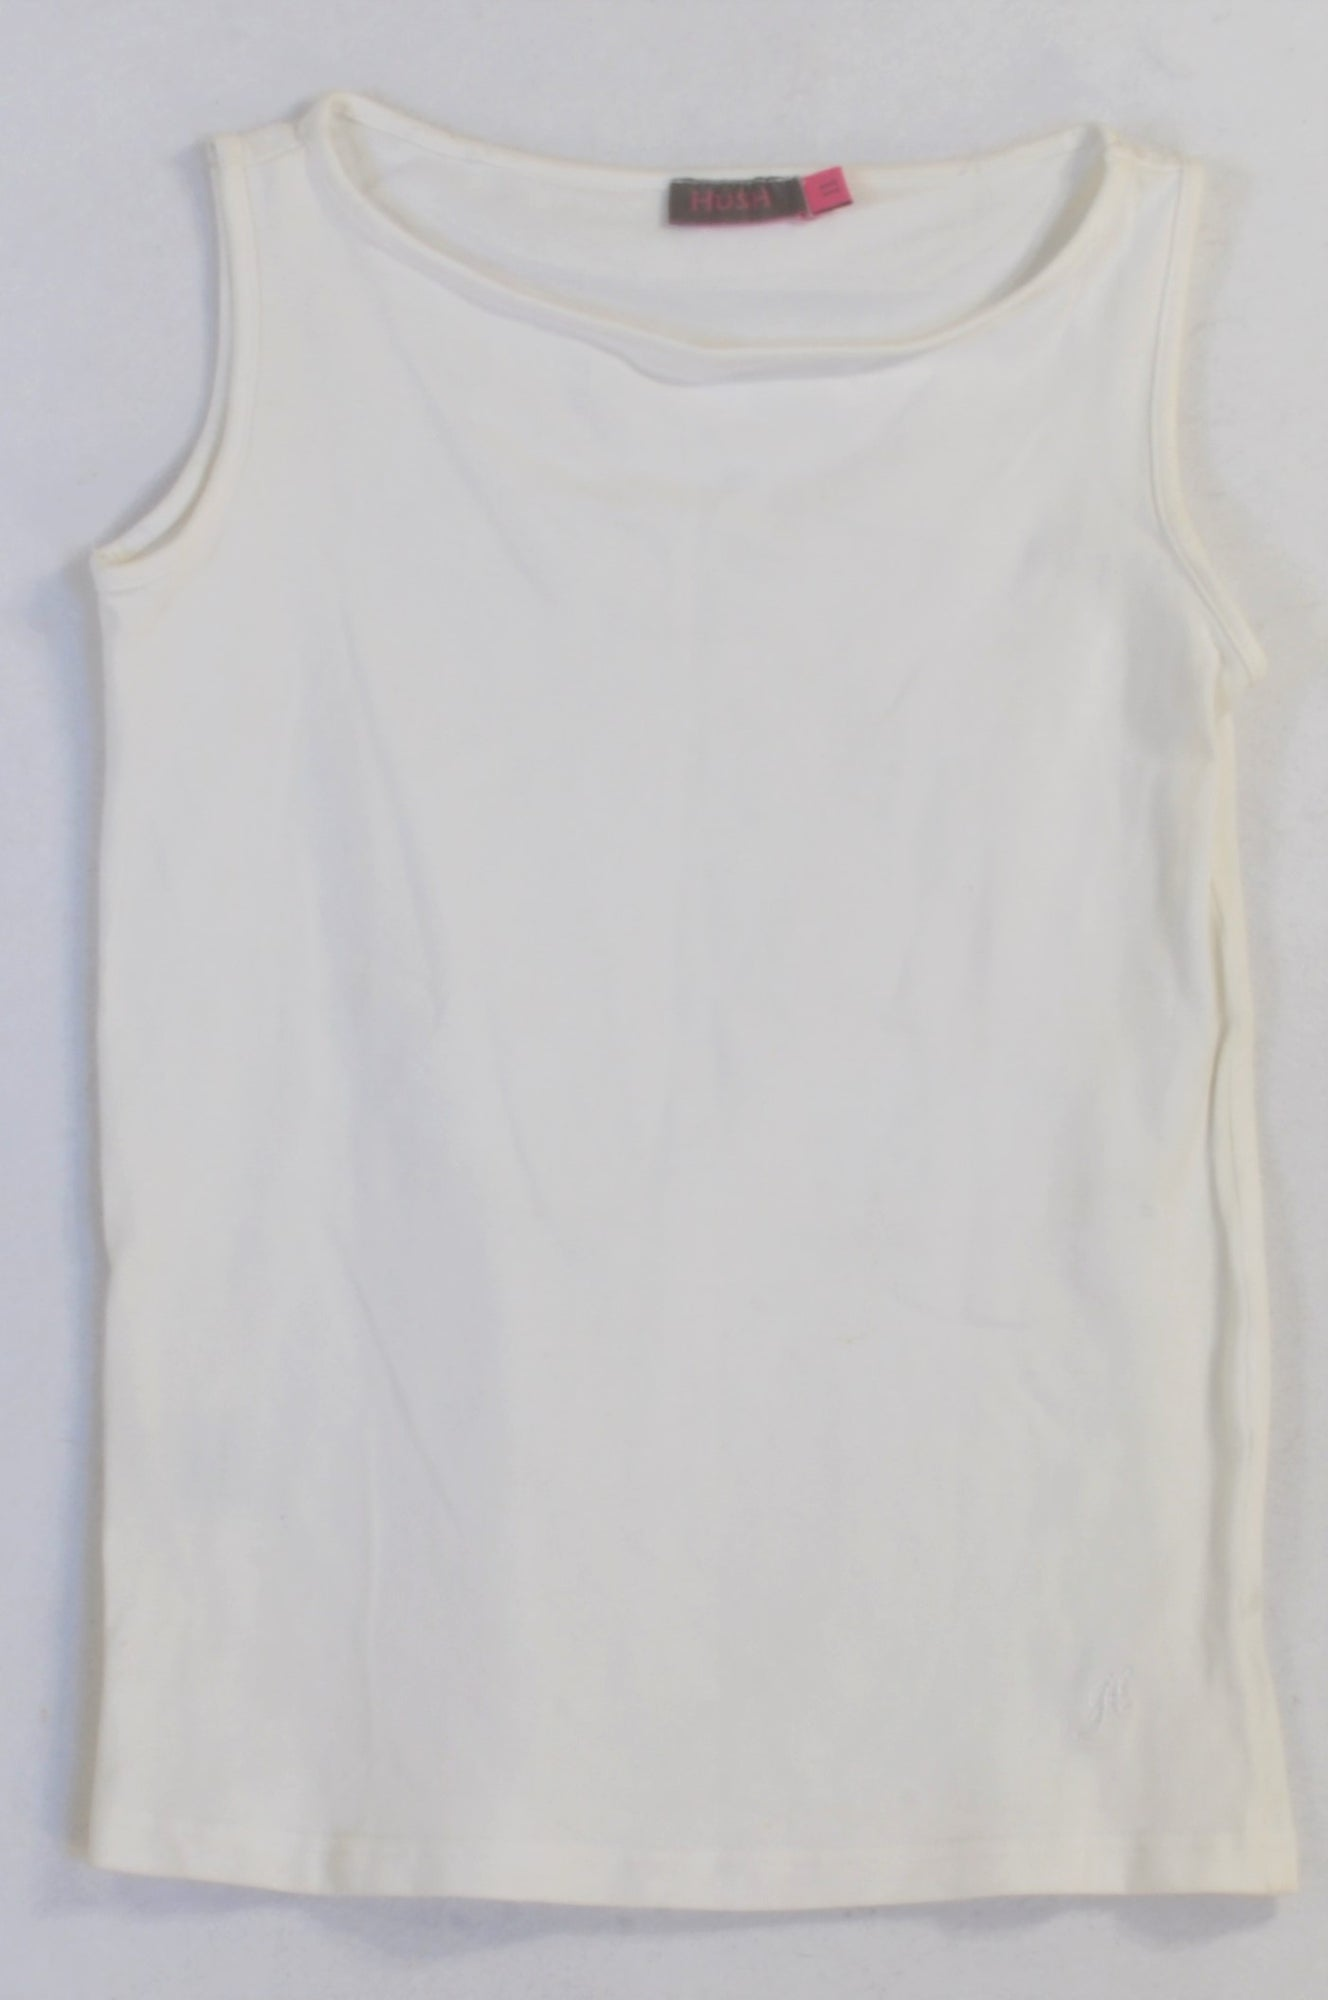 HUSH Basic White Tank Vest Top Girls 10-11 years